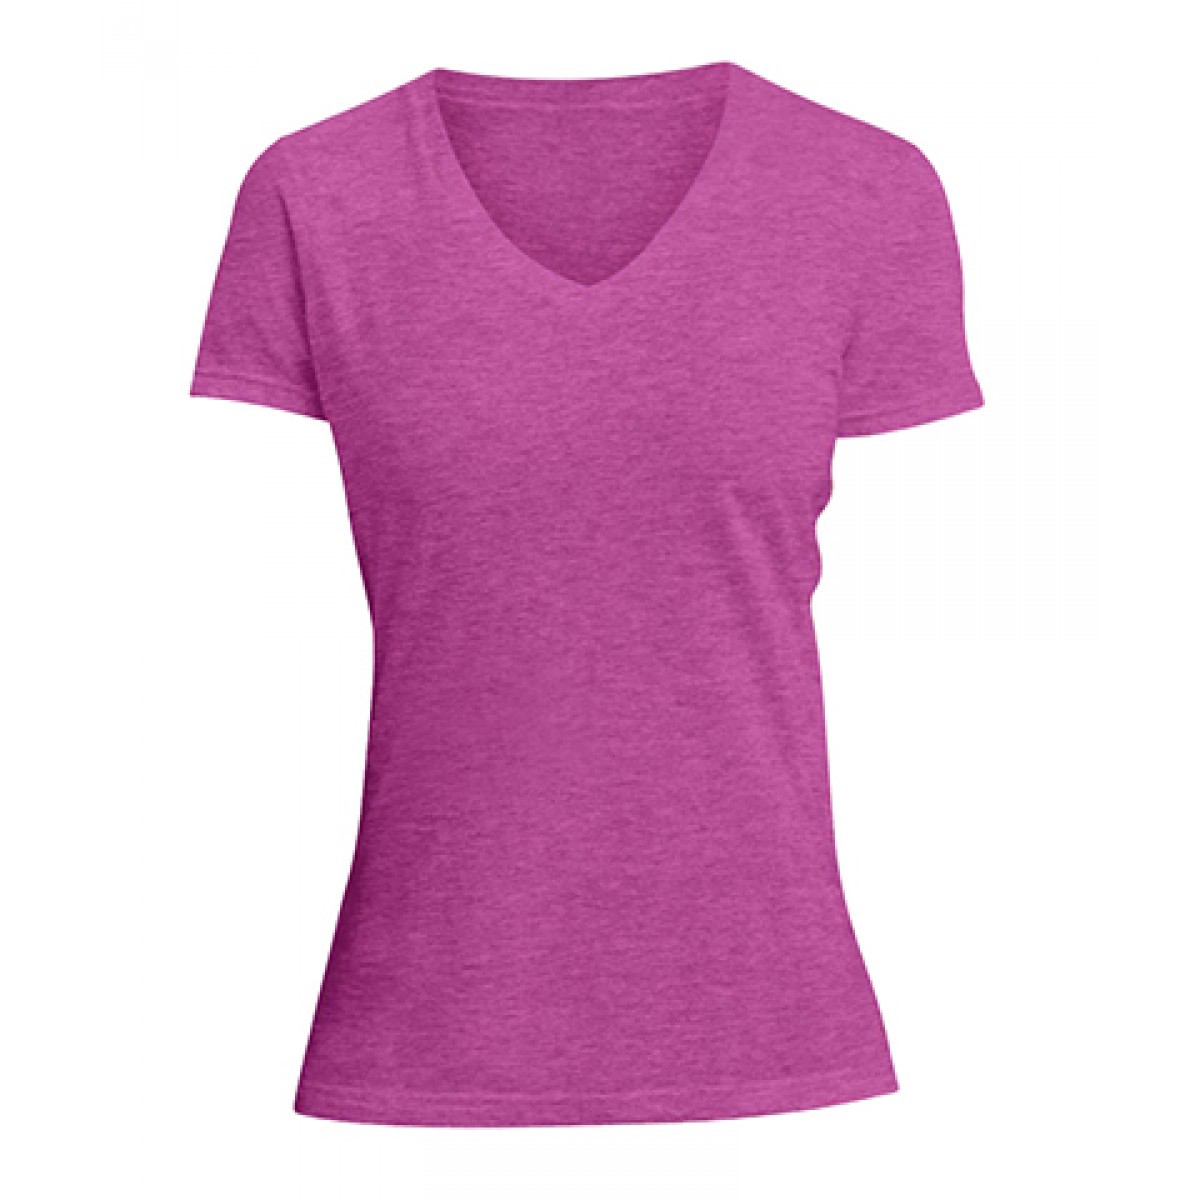 Ladies V-Neck Tee-Heathered Pink Raspberry-4XL